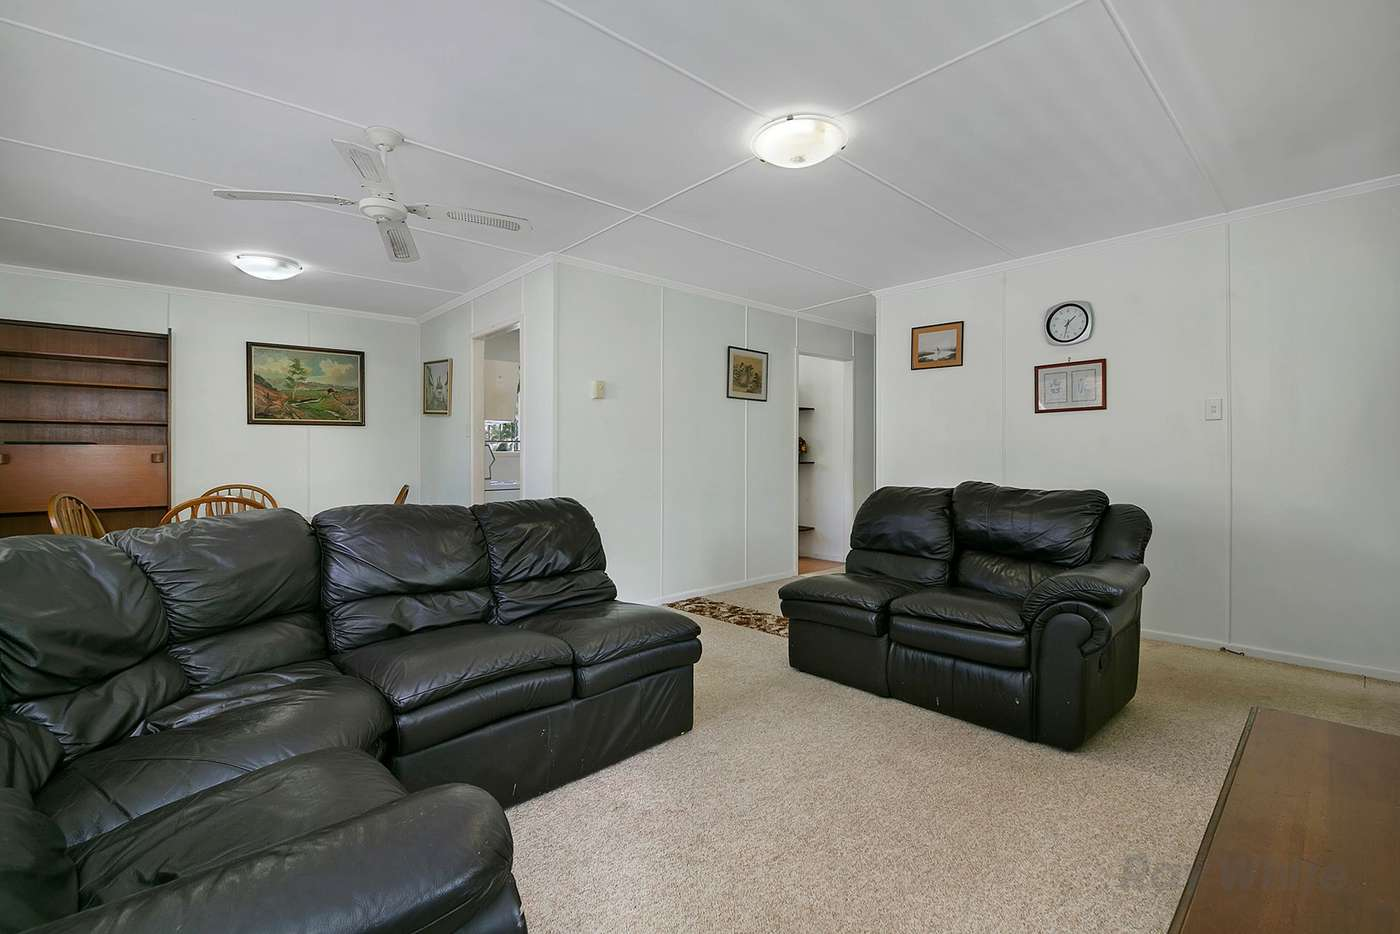 Sixth view of Homely house listing, 169 Highgate Street, Coopers Plains QLD 4108